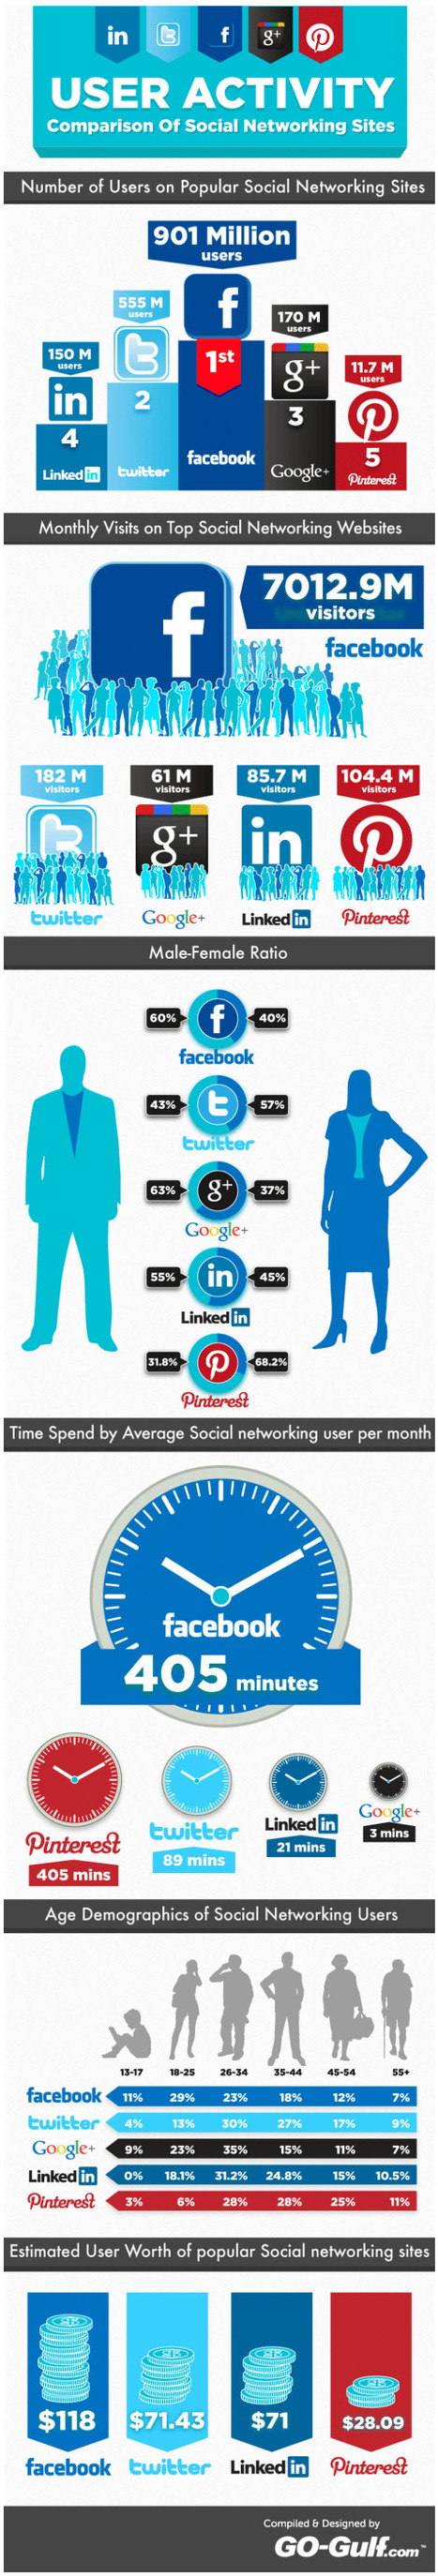 Social Network Tribes Gaining Momentum - The Latest Findings [Infographic] | Social on the GO!!! | Scoop.it